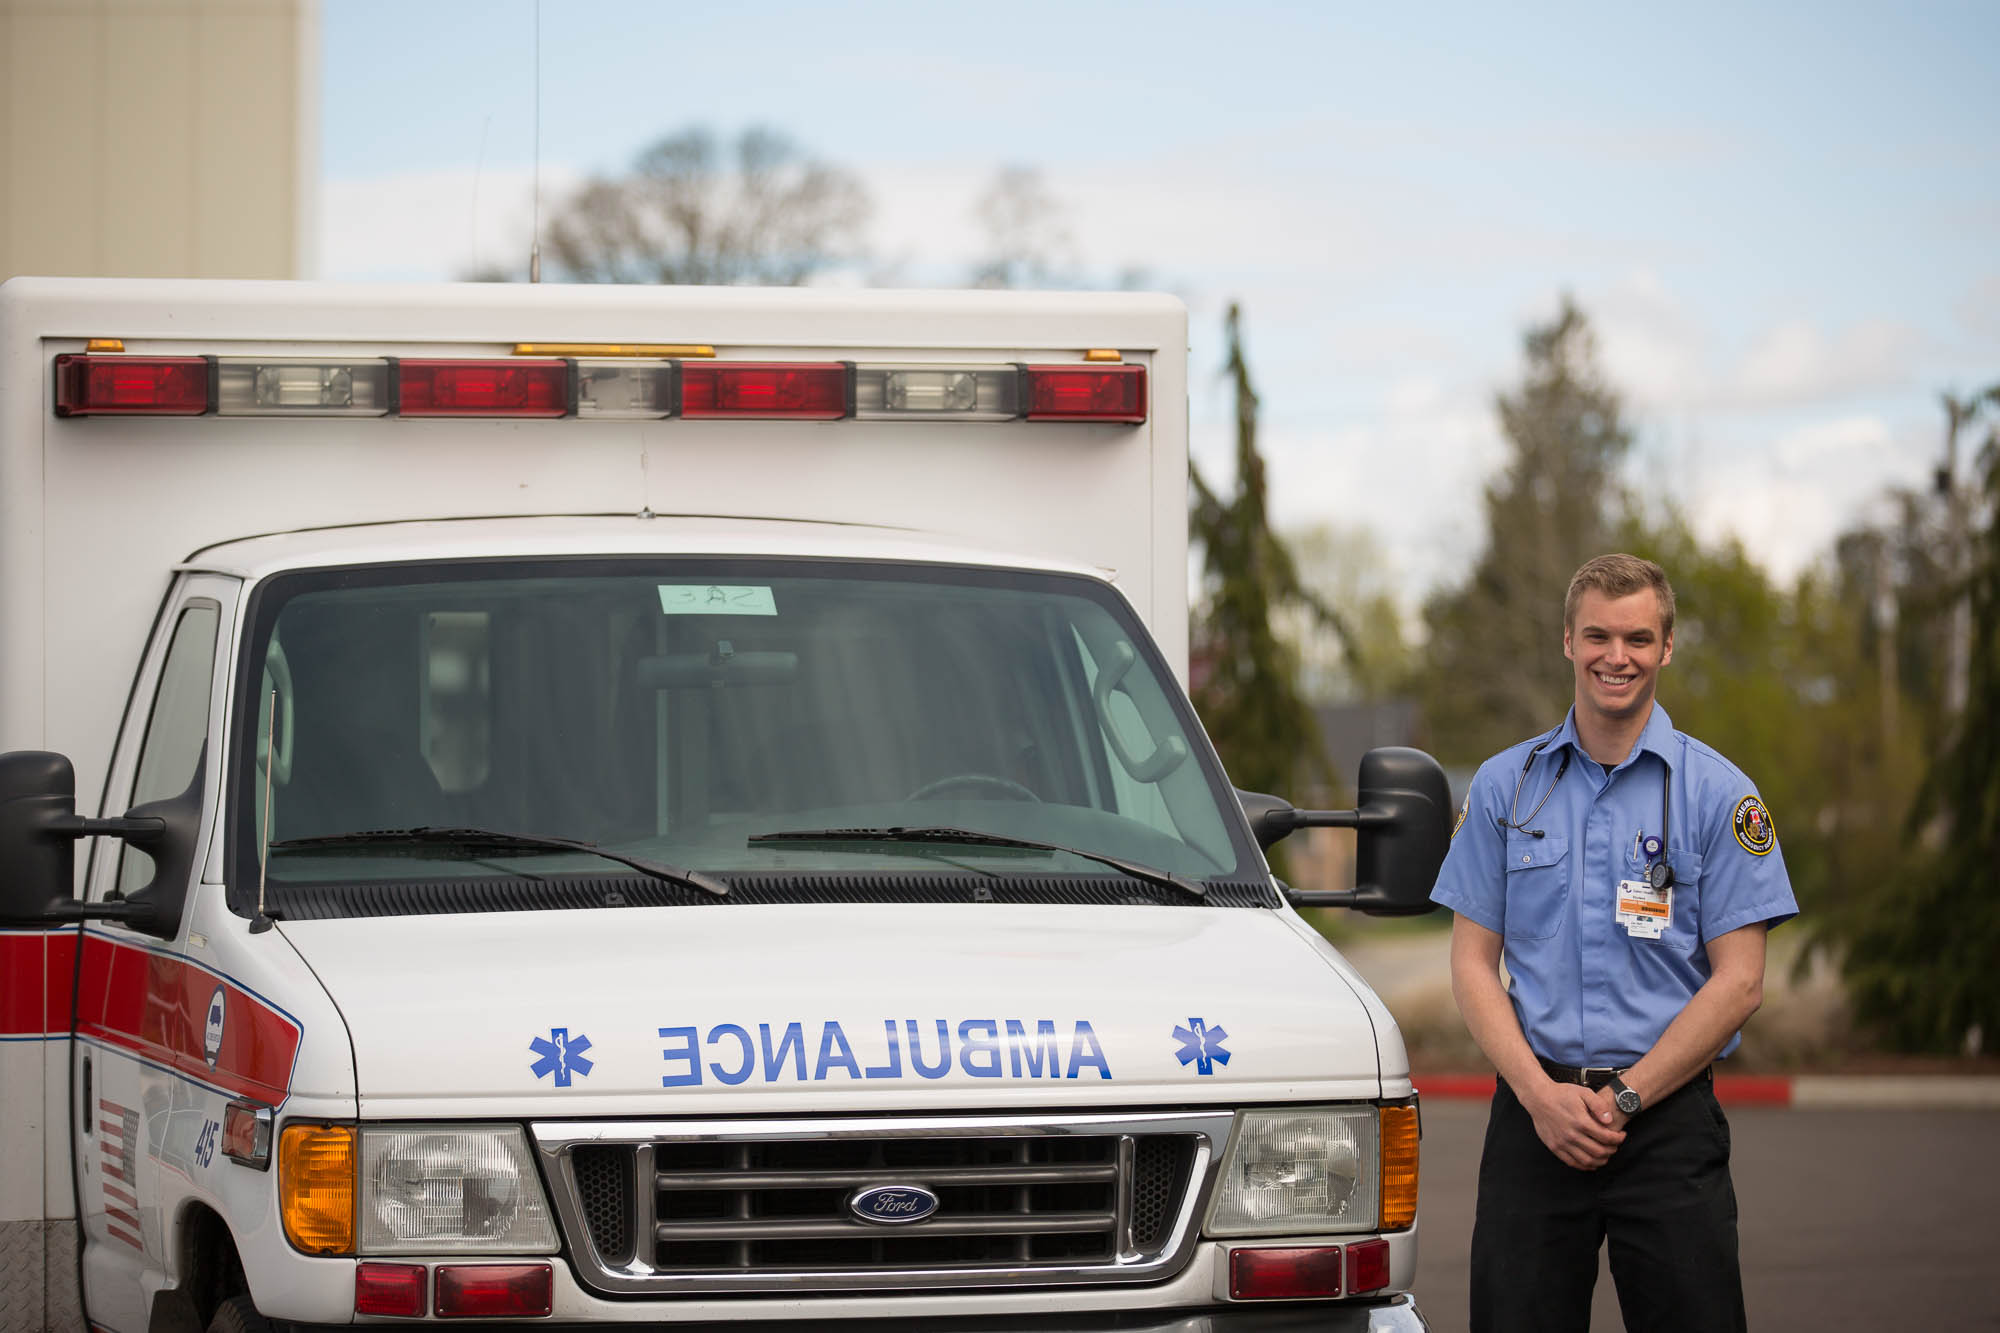 Emergency Medical Technician standing next to an ambulance